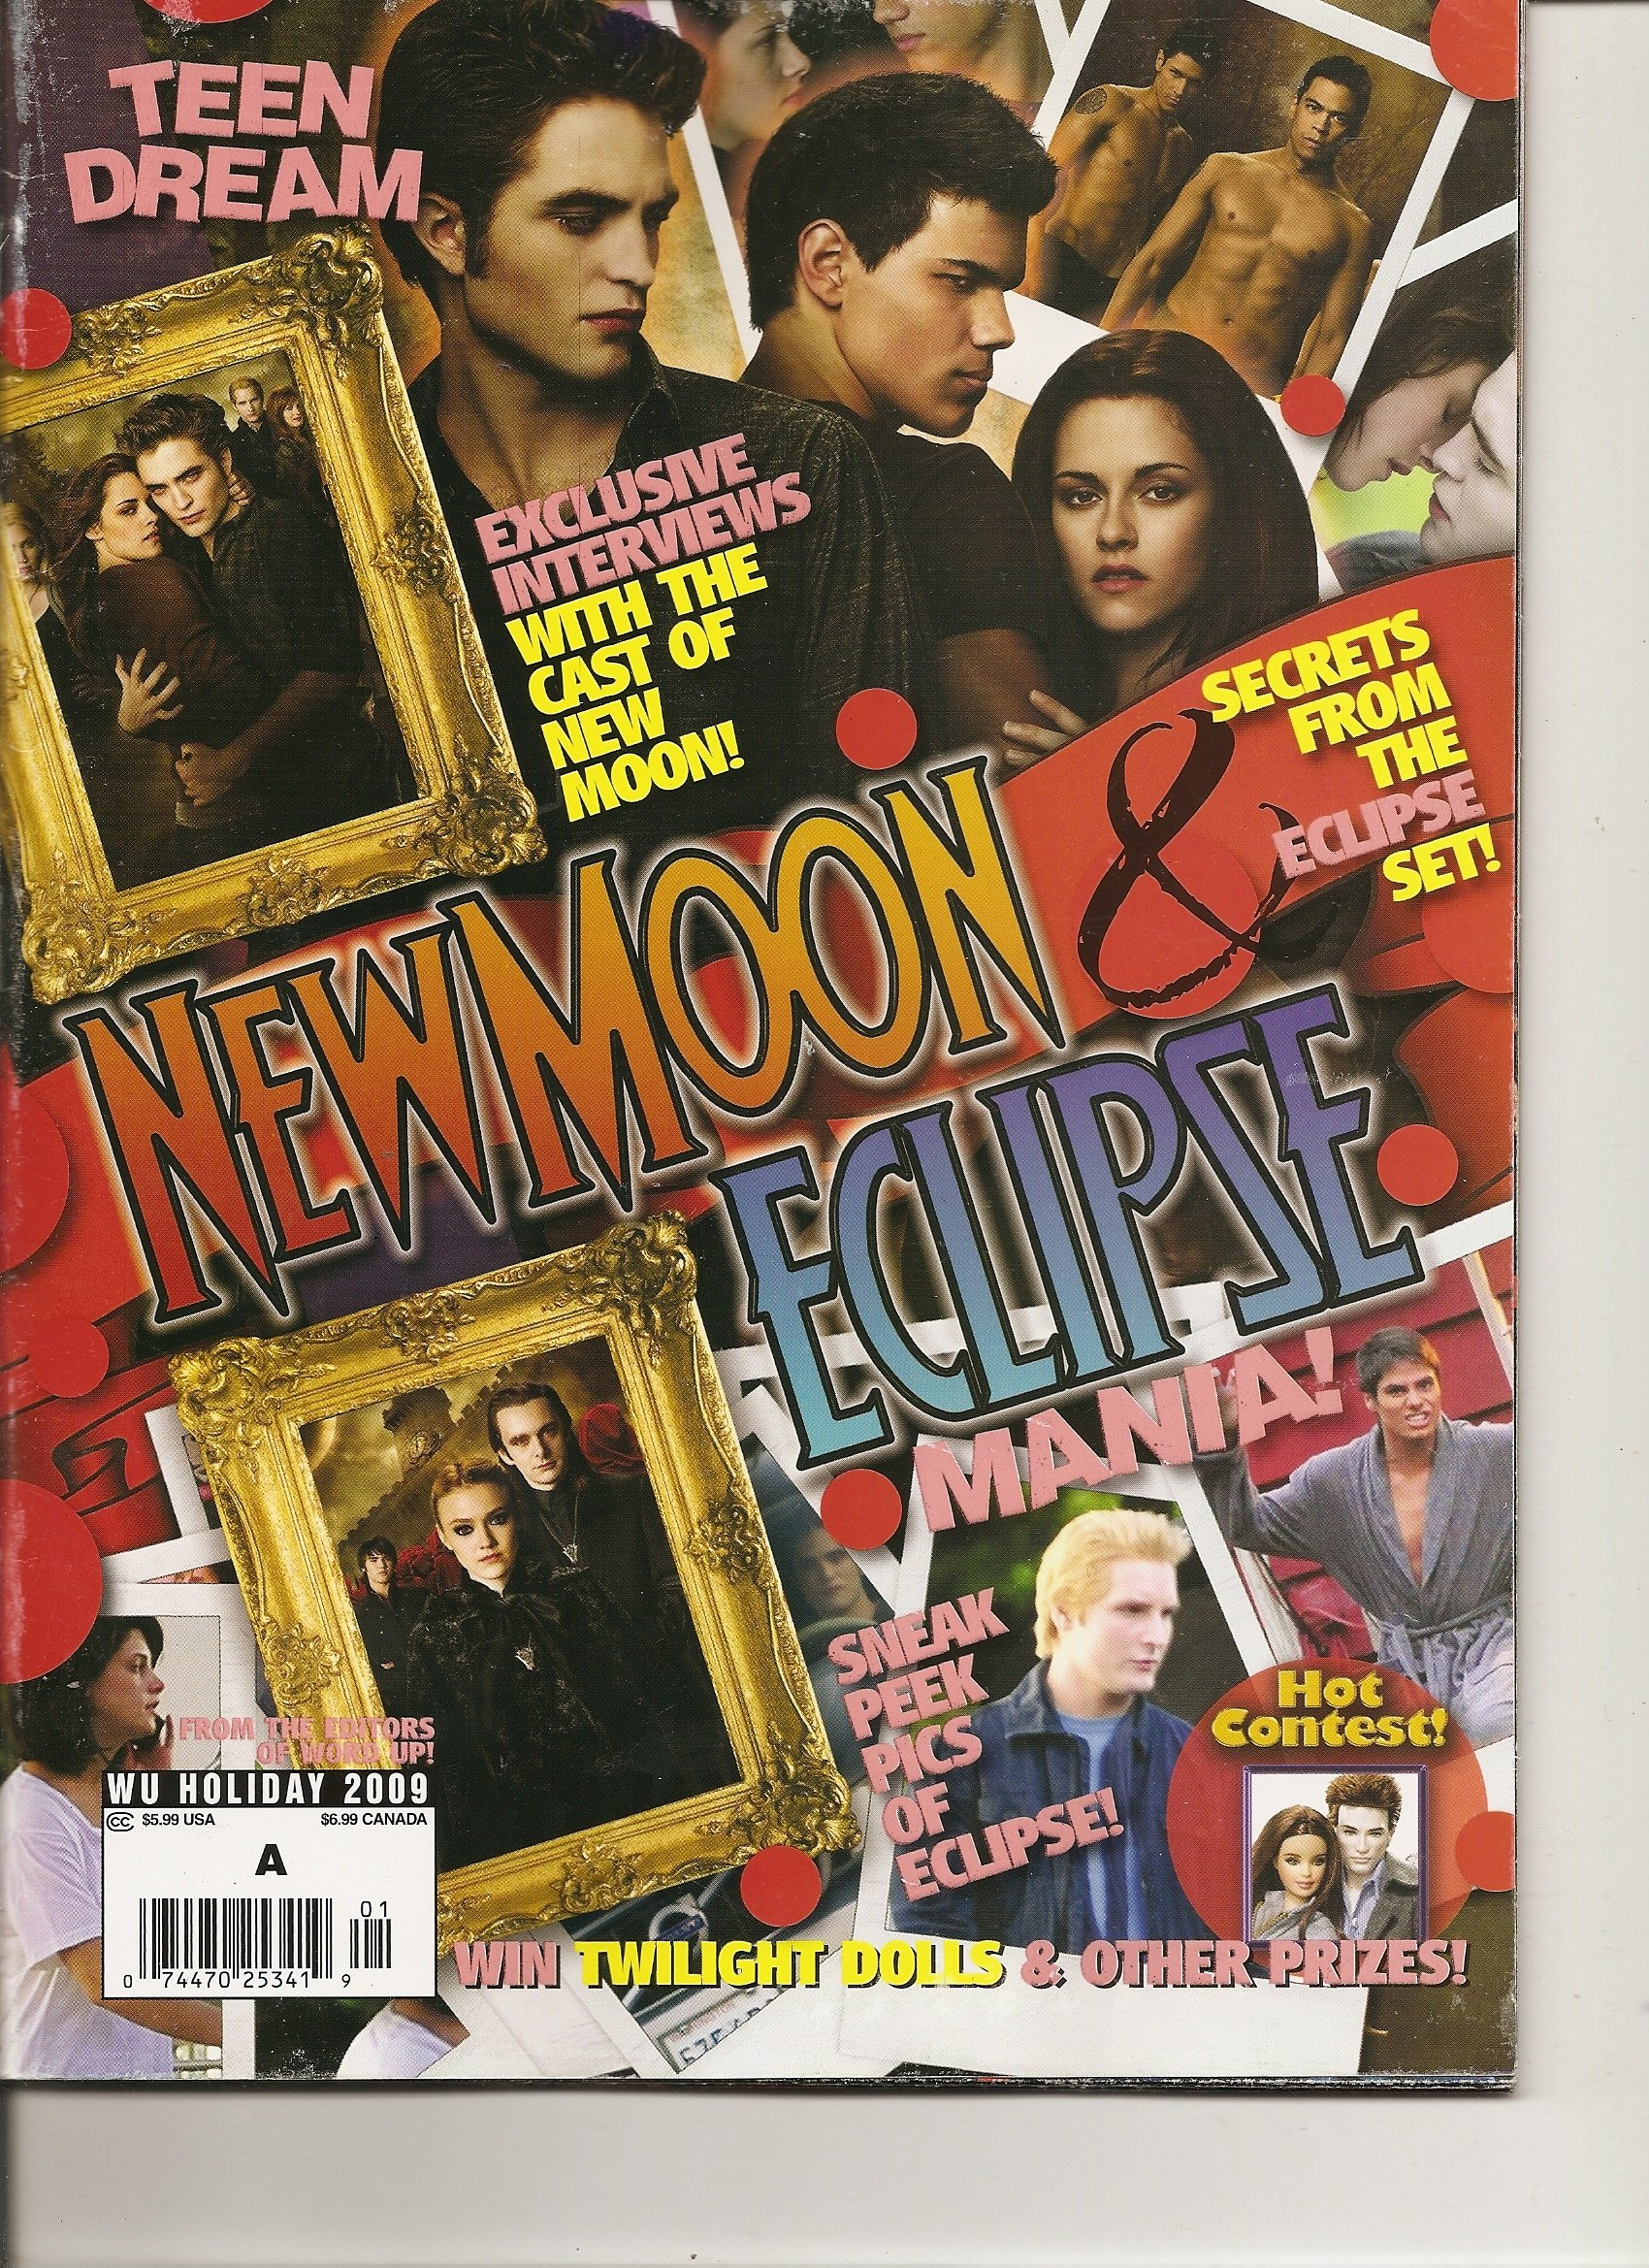 Download Teen Dream Magazine New Moon and Eclipse Mania (Exclusive interviews with the cast of NewMoon plus Secrets fom the Eclipse set, Holiday 2009) PDF